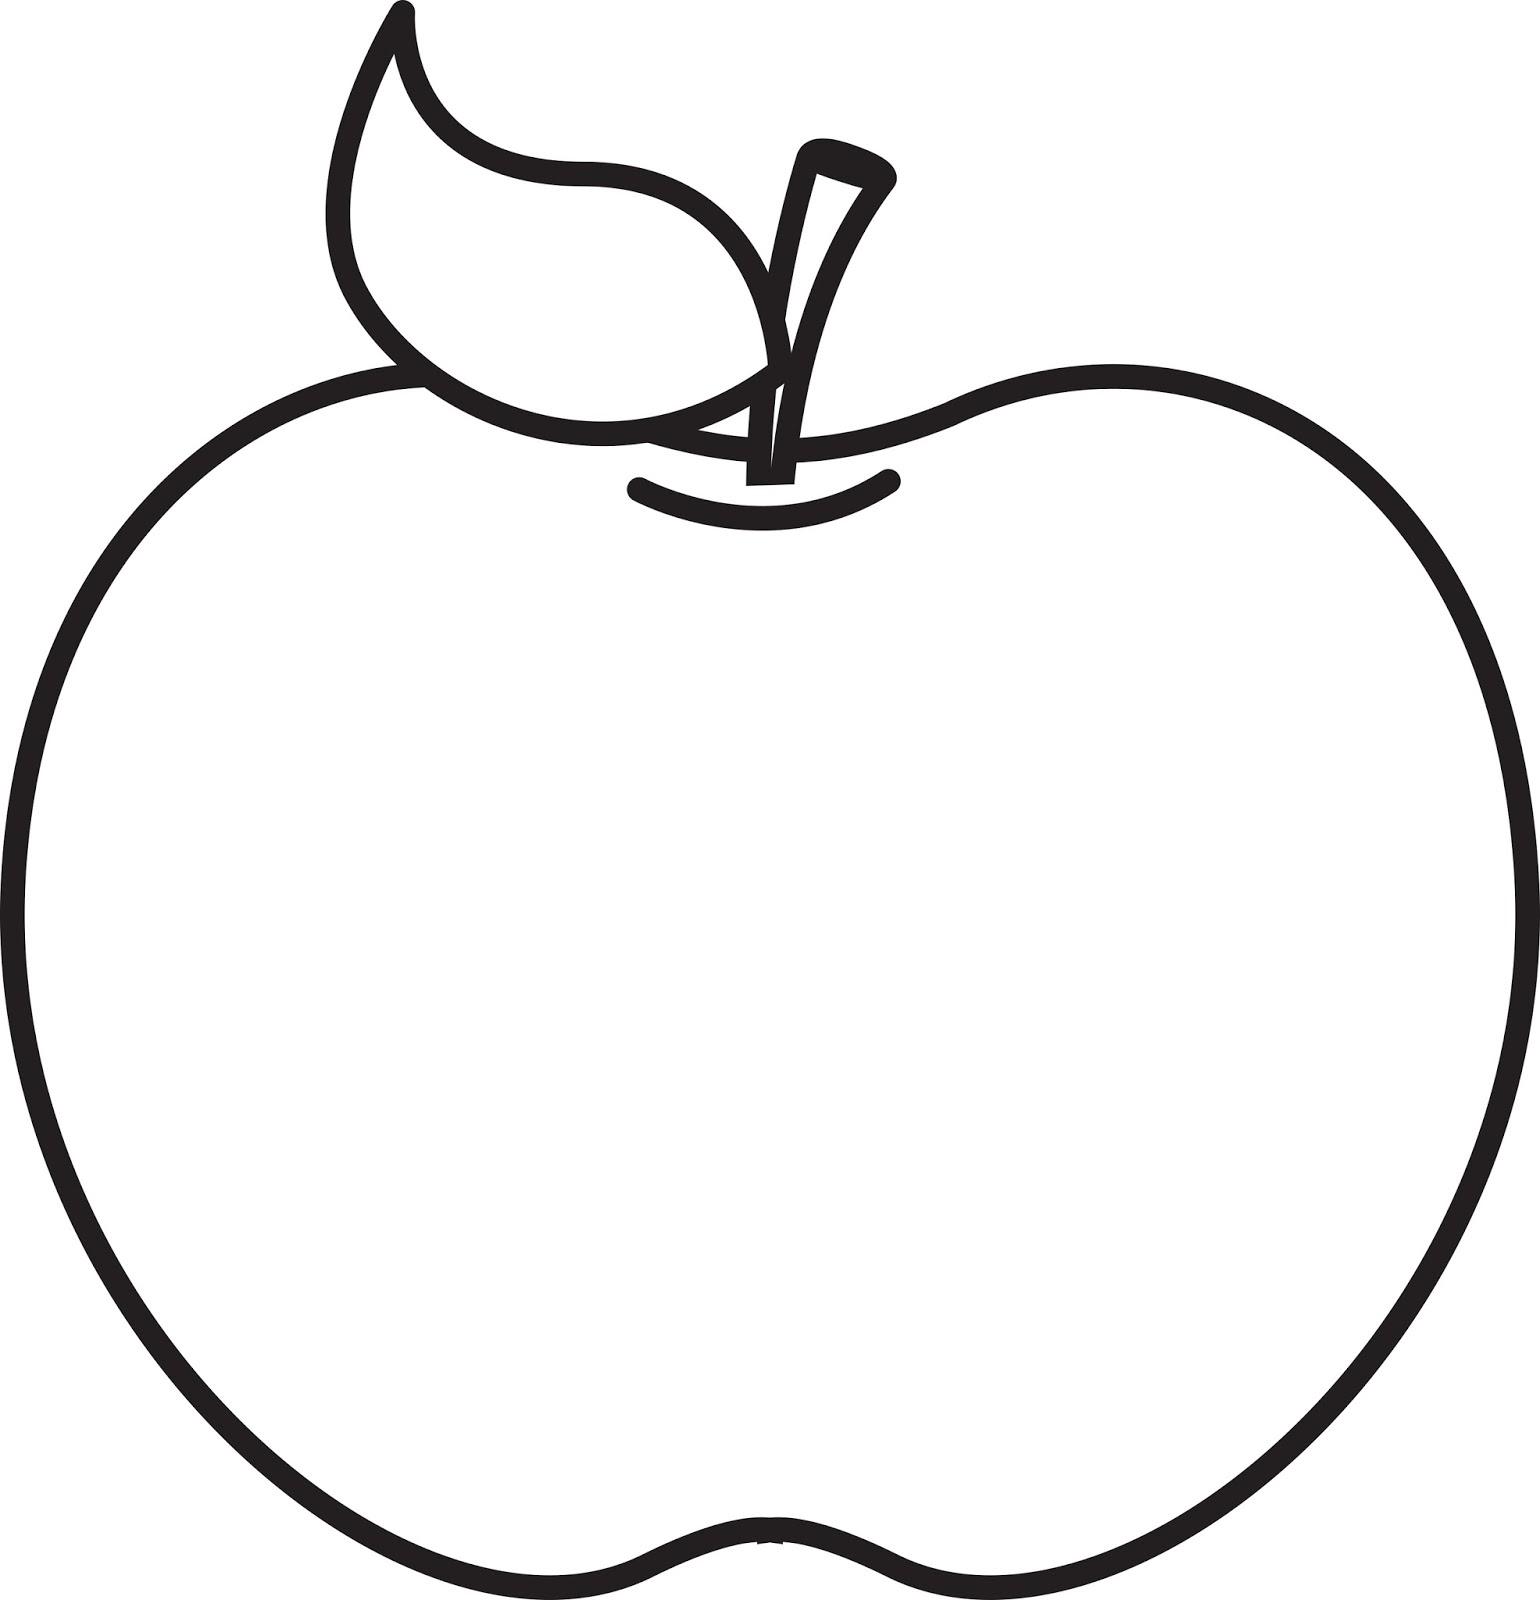 1540x1600 Apple Clip Art Black And White